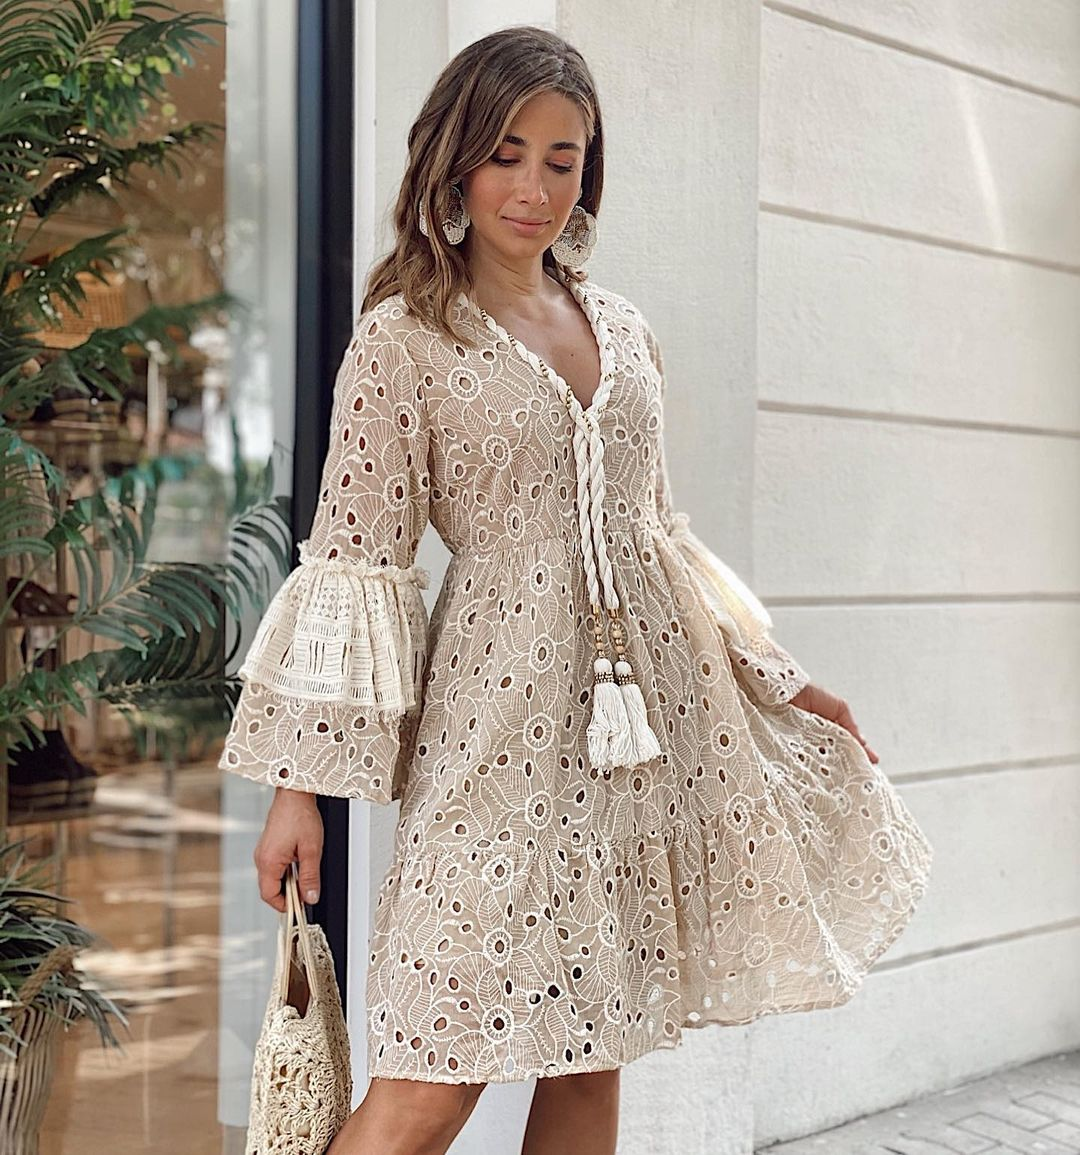 Summer dresses that you can also wear if it's cold